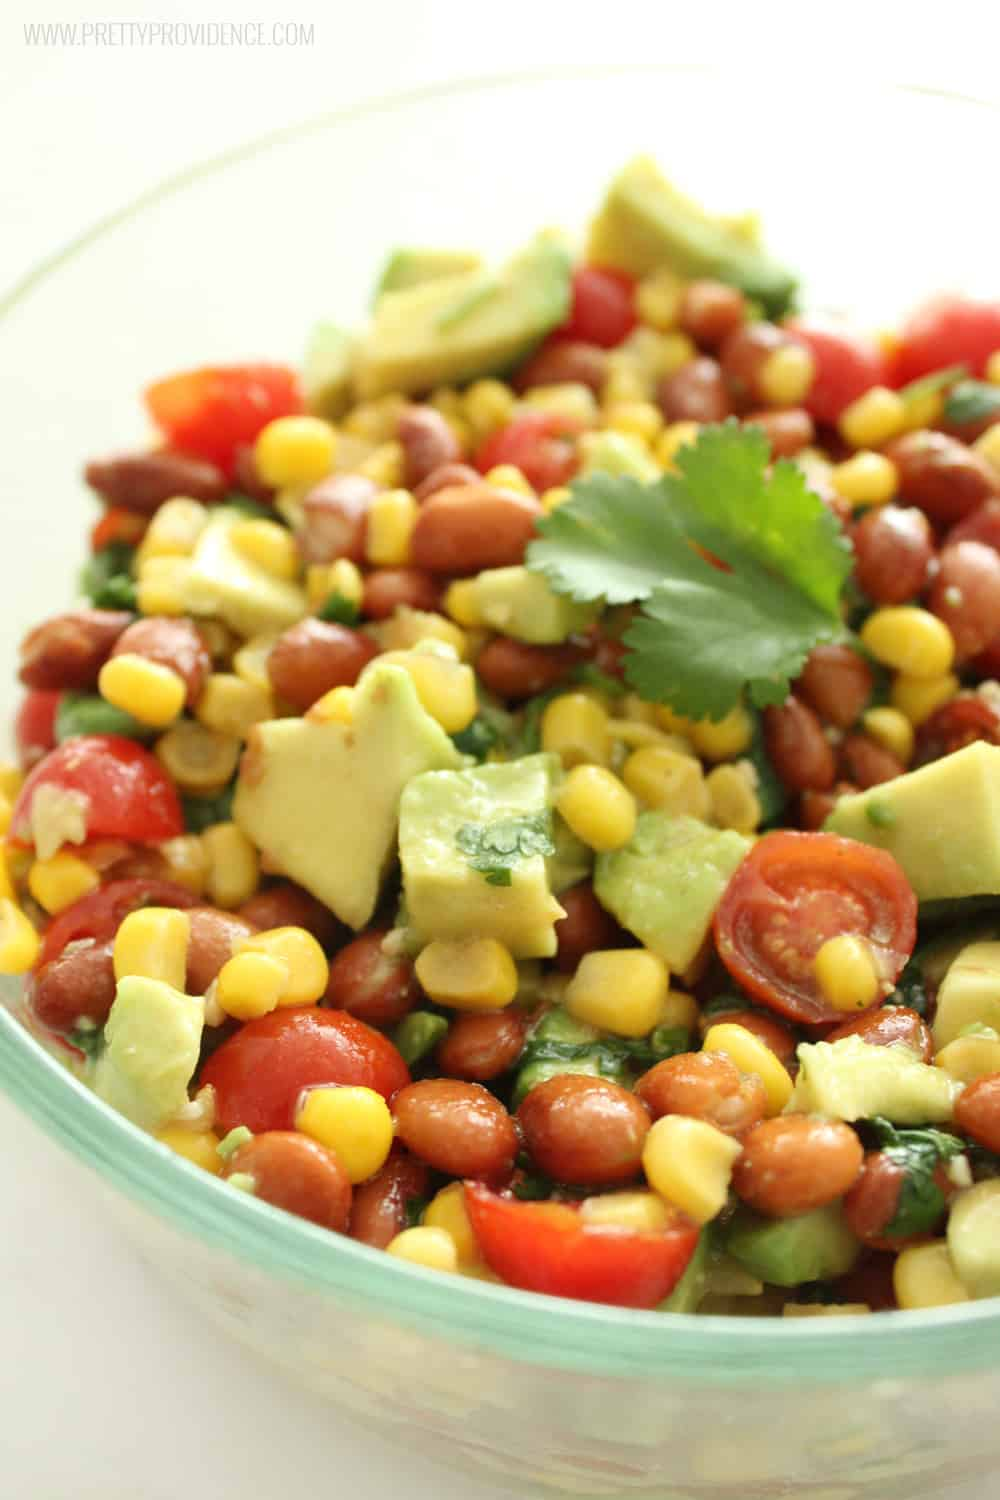 Hands down this is the best corn salsa EVER!! The light vinaigrette on the top is so good I could drink it! It's healthy and quick to whip together too!